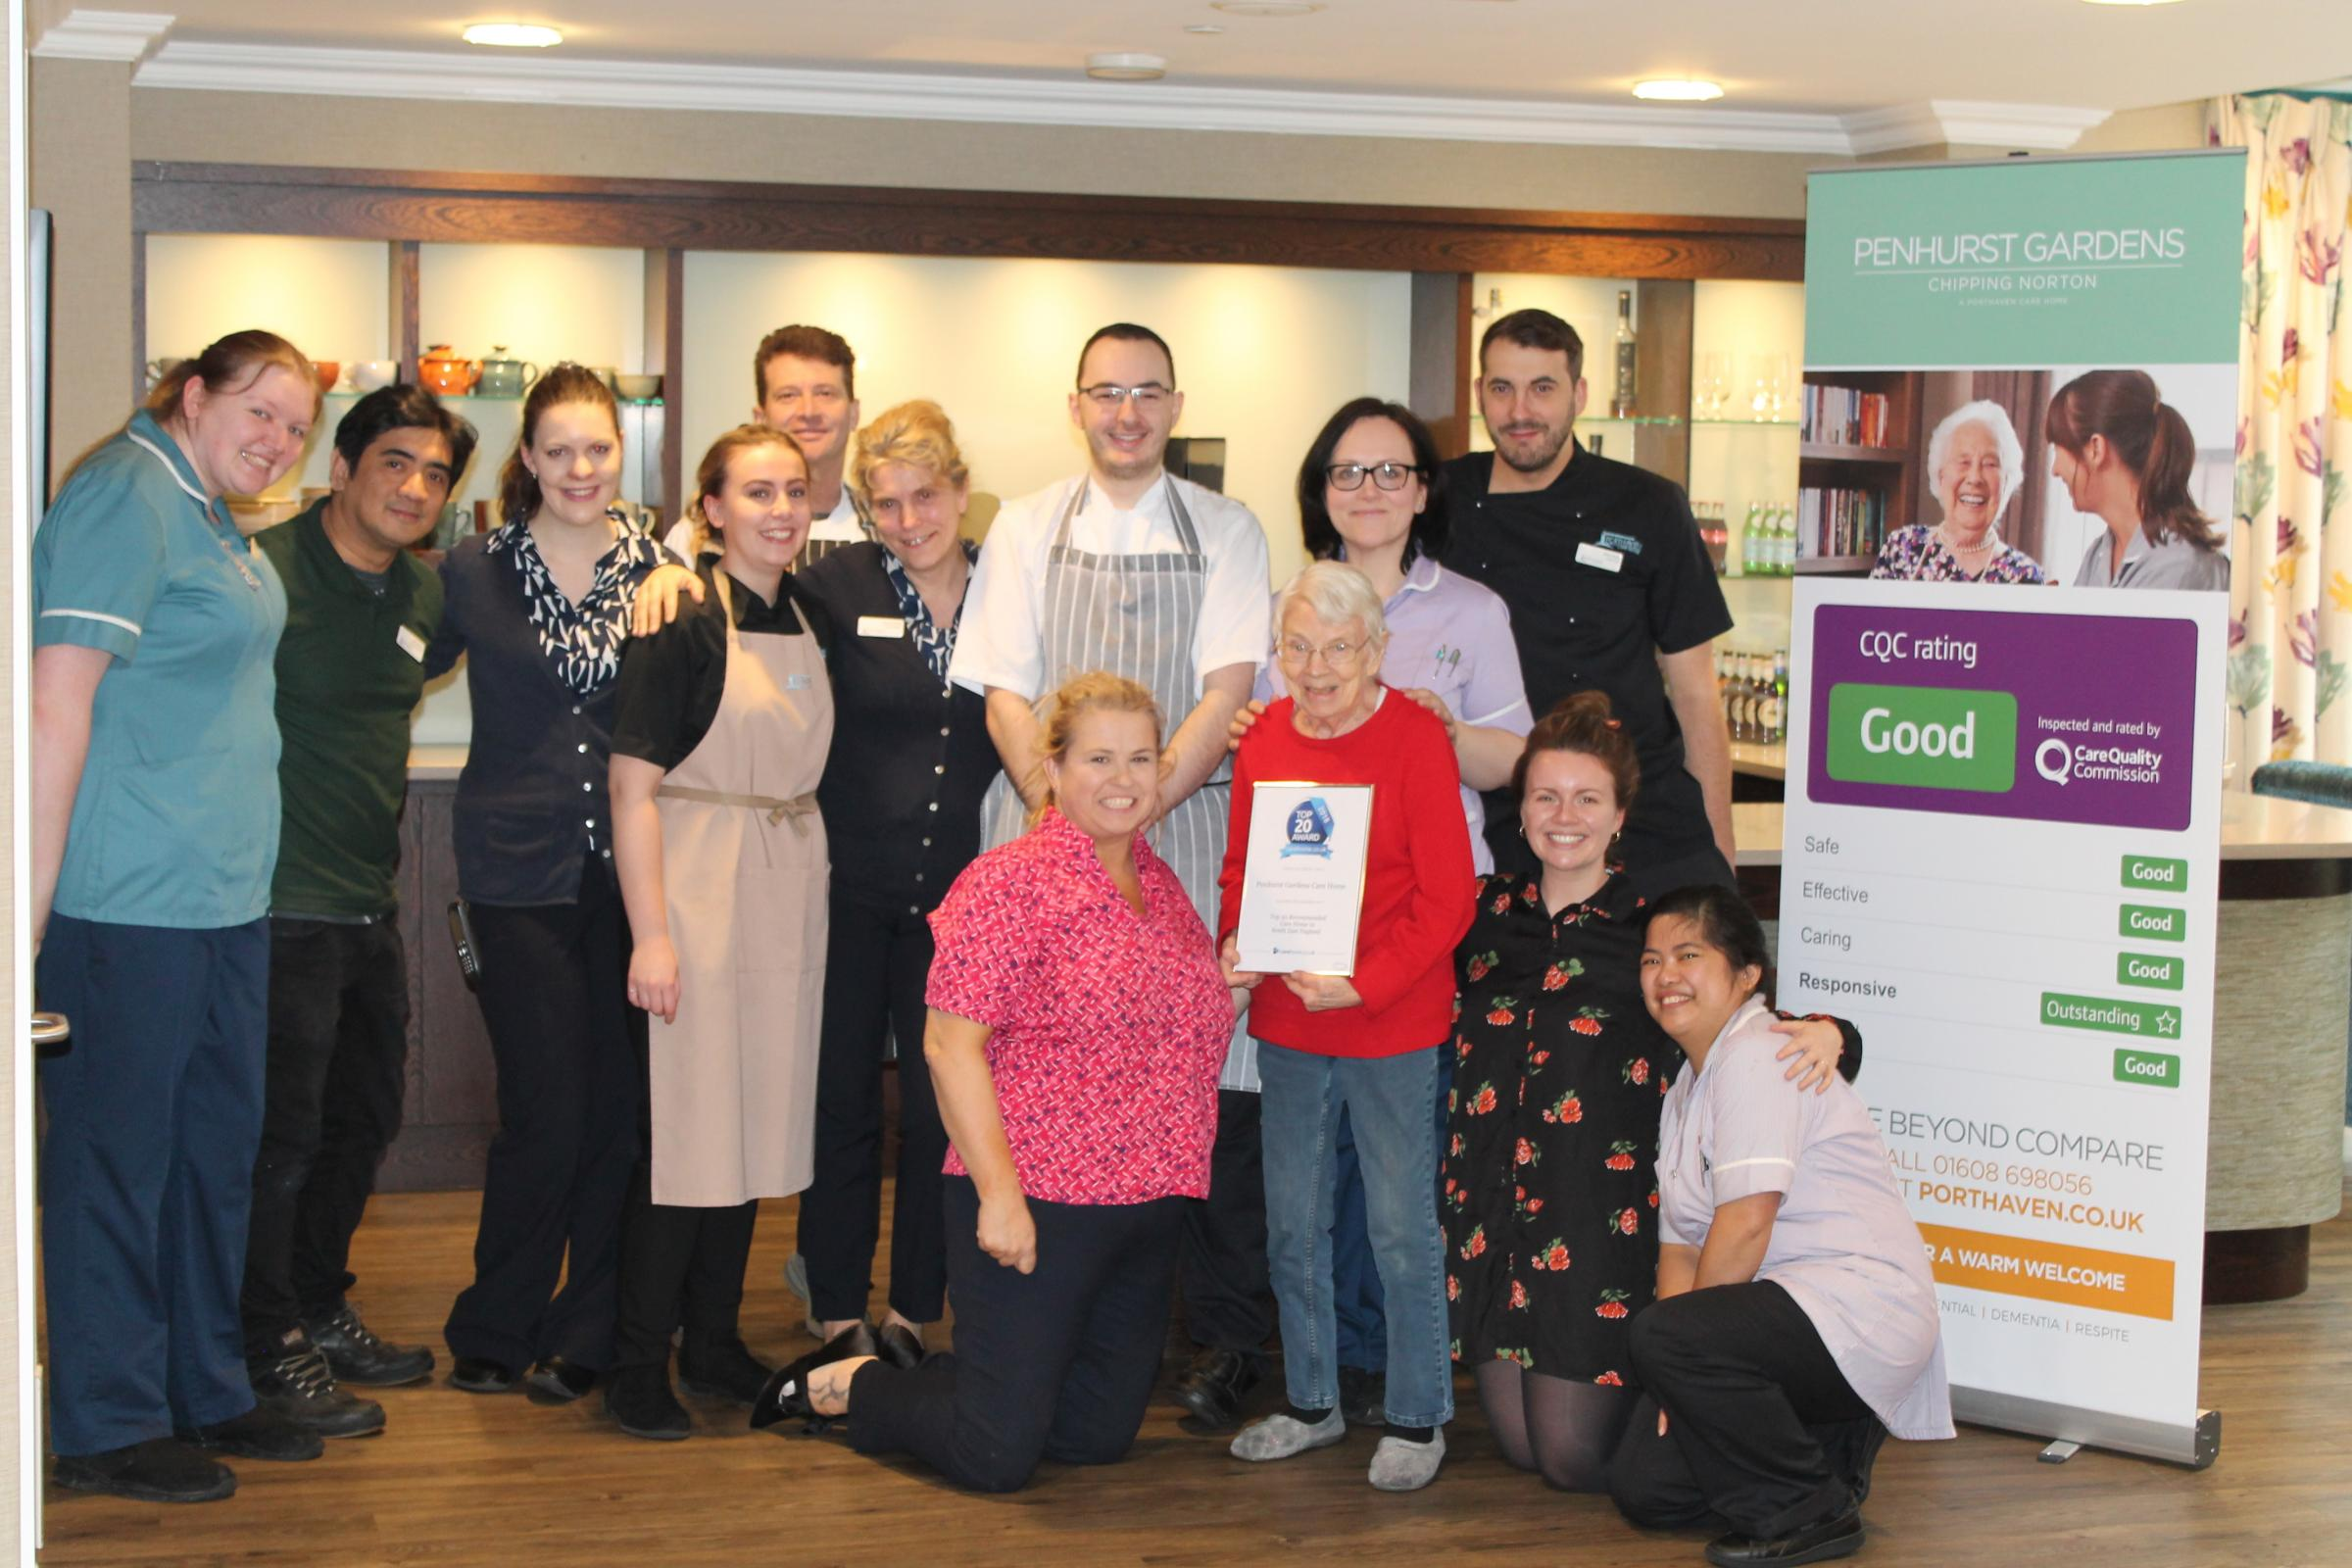 Penhurst Gardens' residents and staff awarded with their Top 20 award